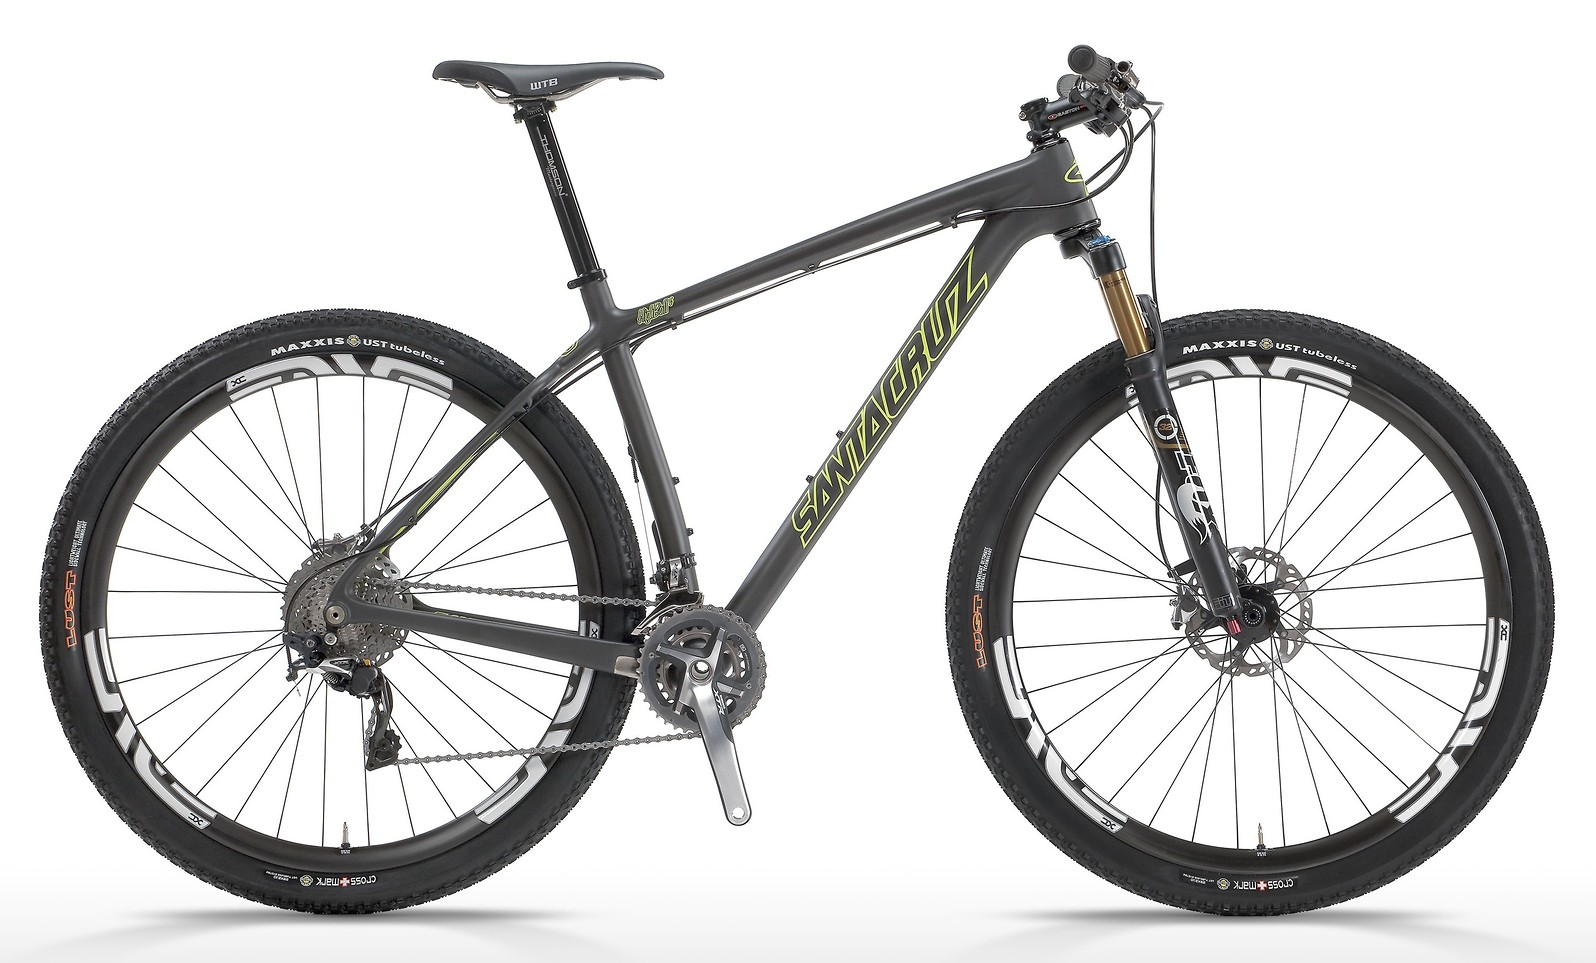 2014 Santa Cruz Highball Carbon X0-1 XC 29 Bike 2013 HIGHBALL Ccatalogflat